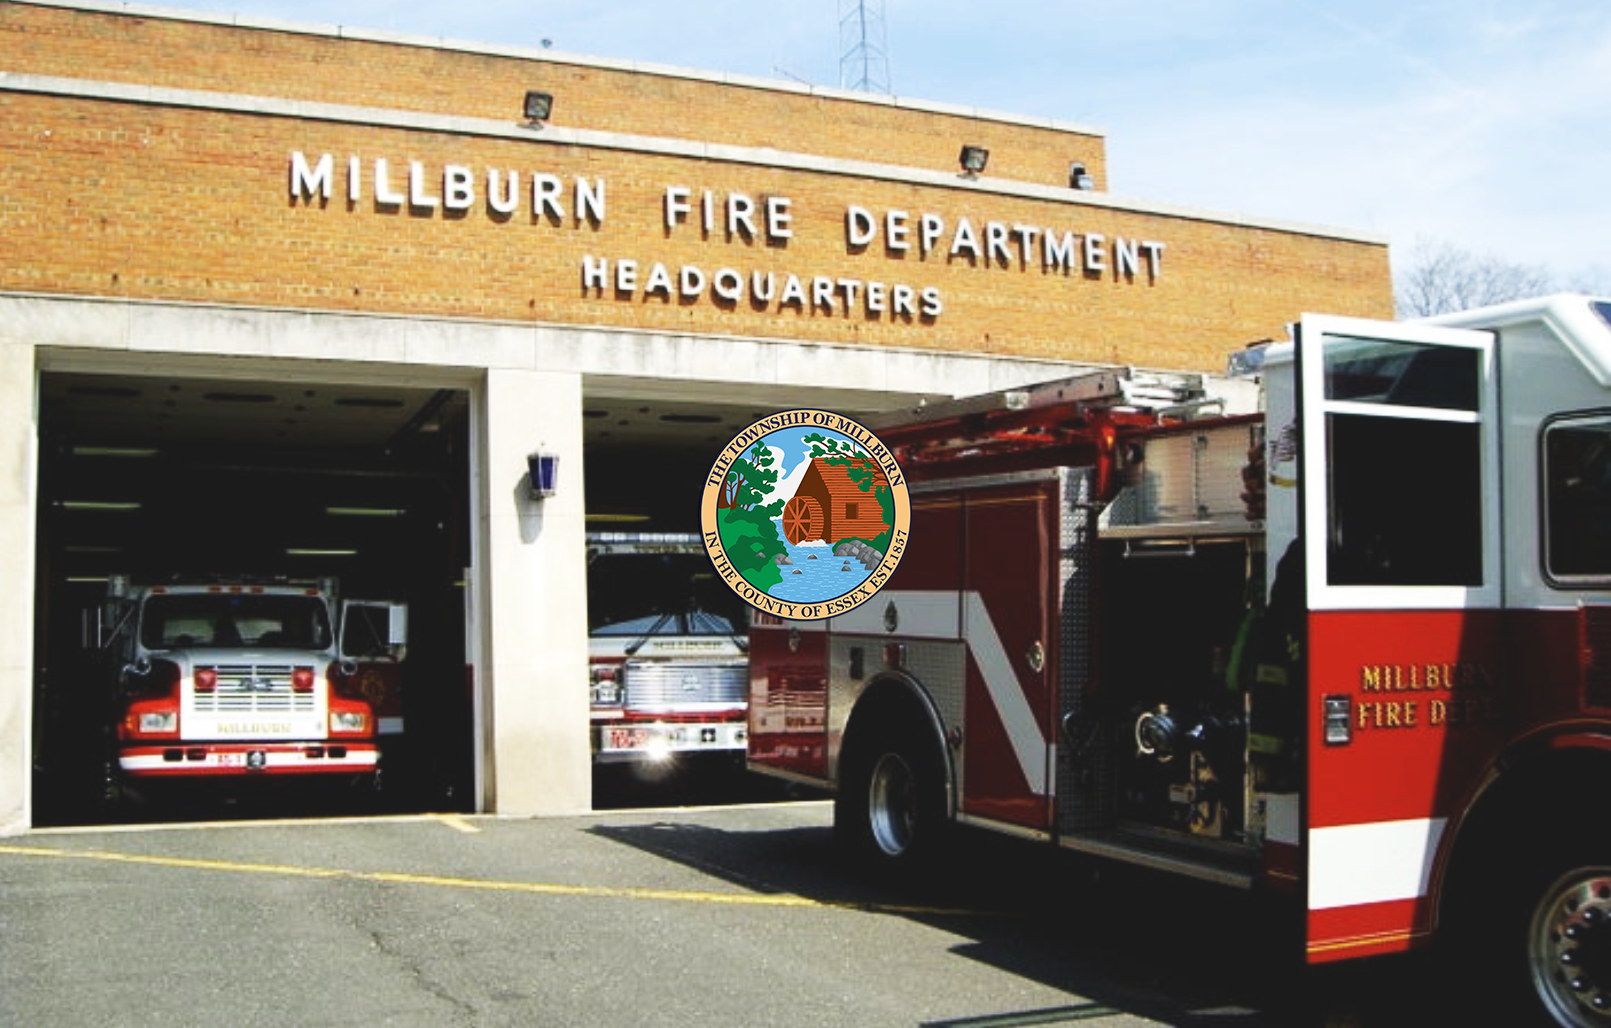 Millburn Fire Department Headquarters